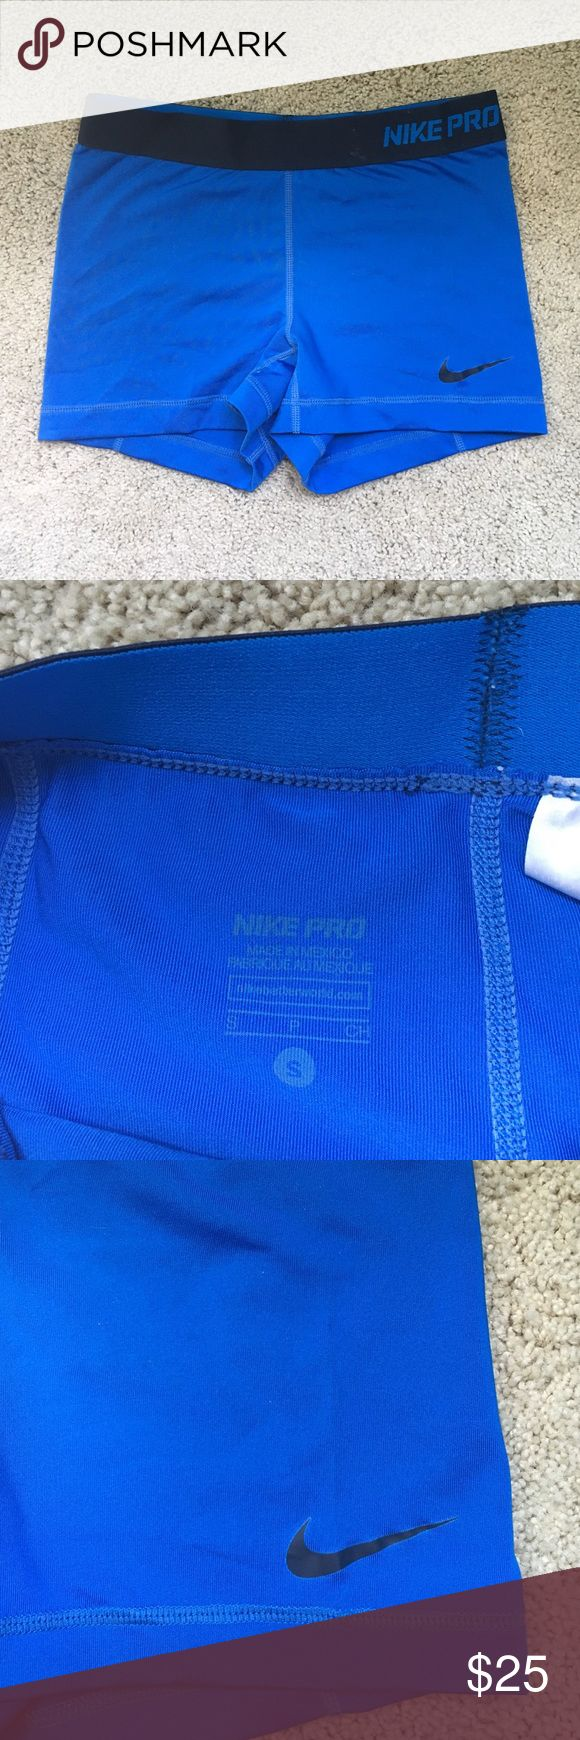 Nike Pro Combat Spandex These cute Nike spandex are in great condition! They are blue with a dark blue waistband. SO comfortable and are great for working out in or just wearing around :) Nike Pants Track Pants & Joggers